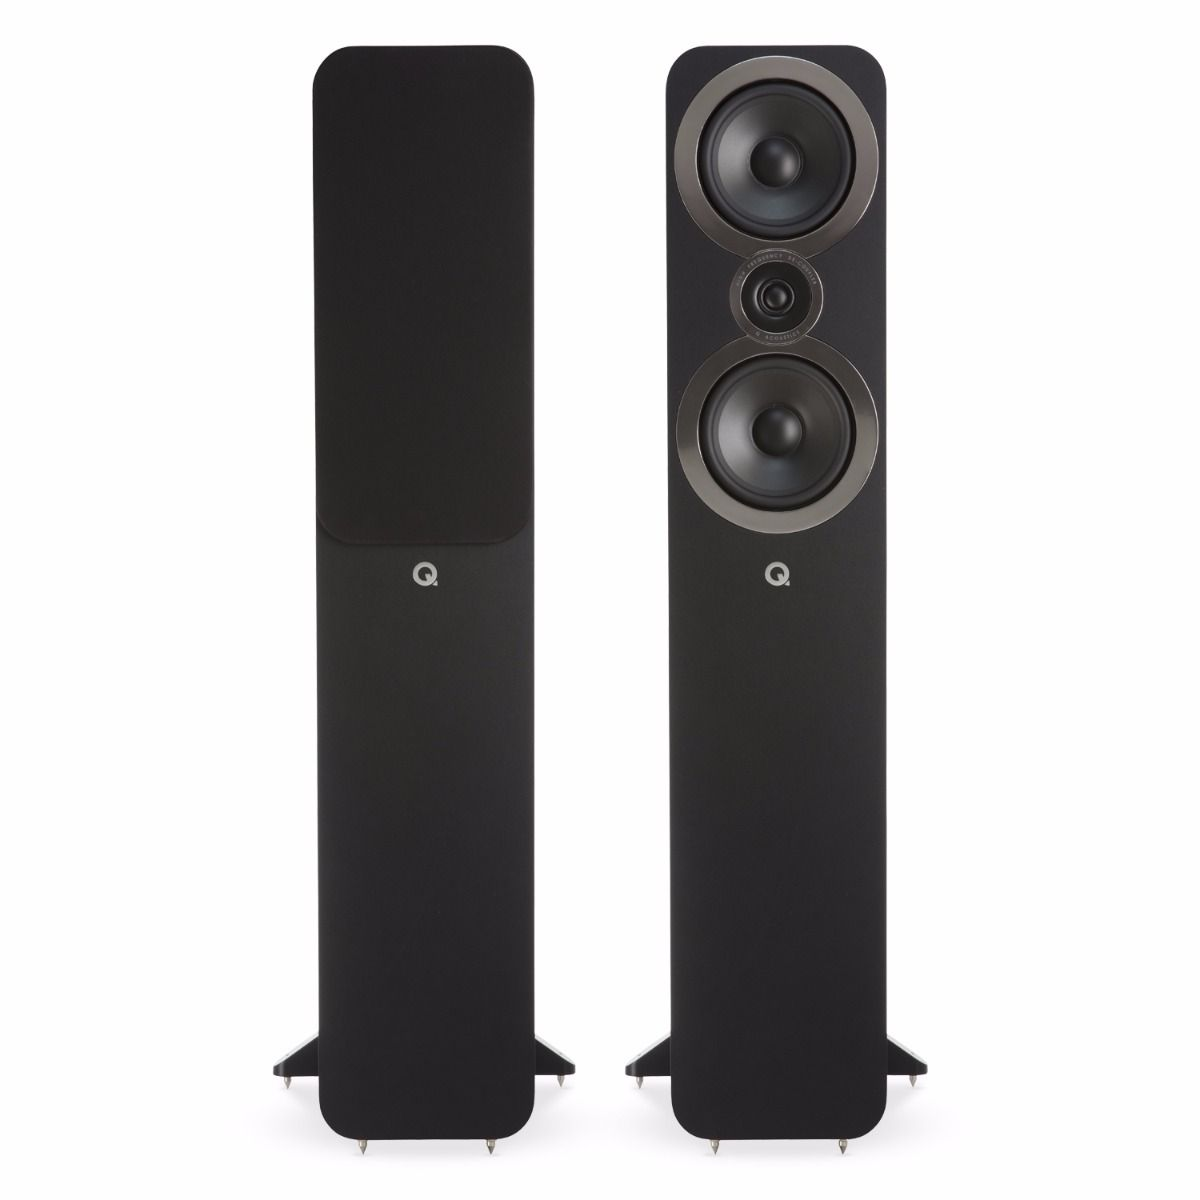 3050i - Floor Stand Speakers | Q Acoustics